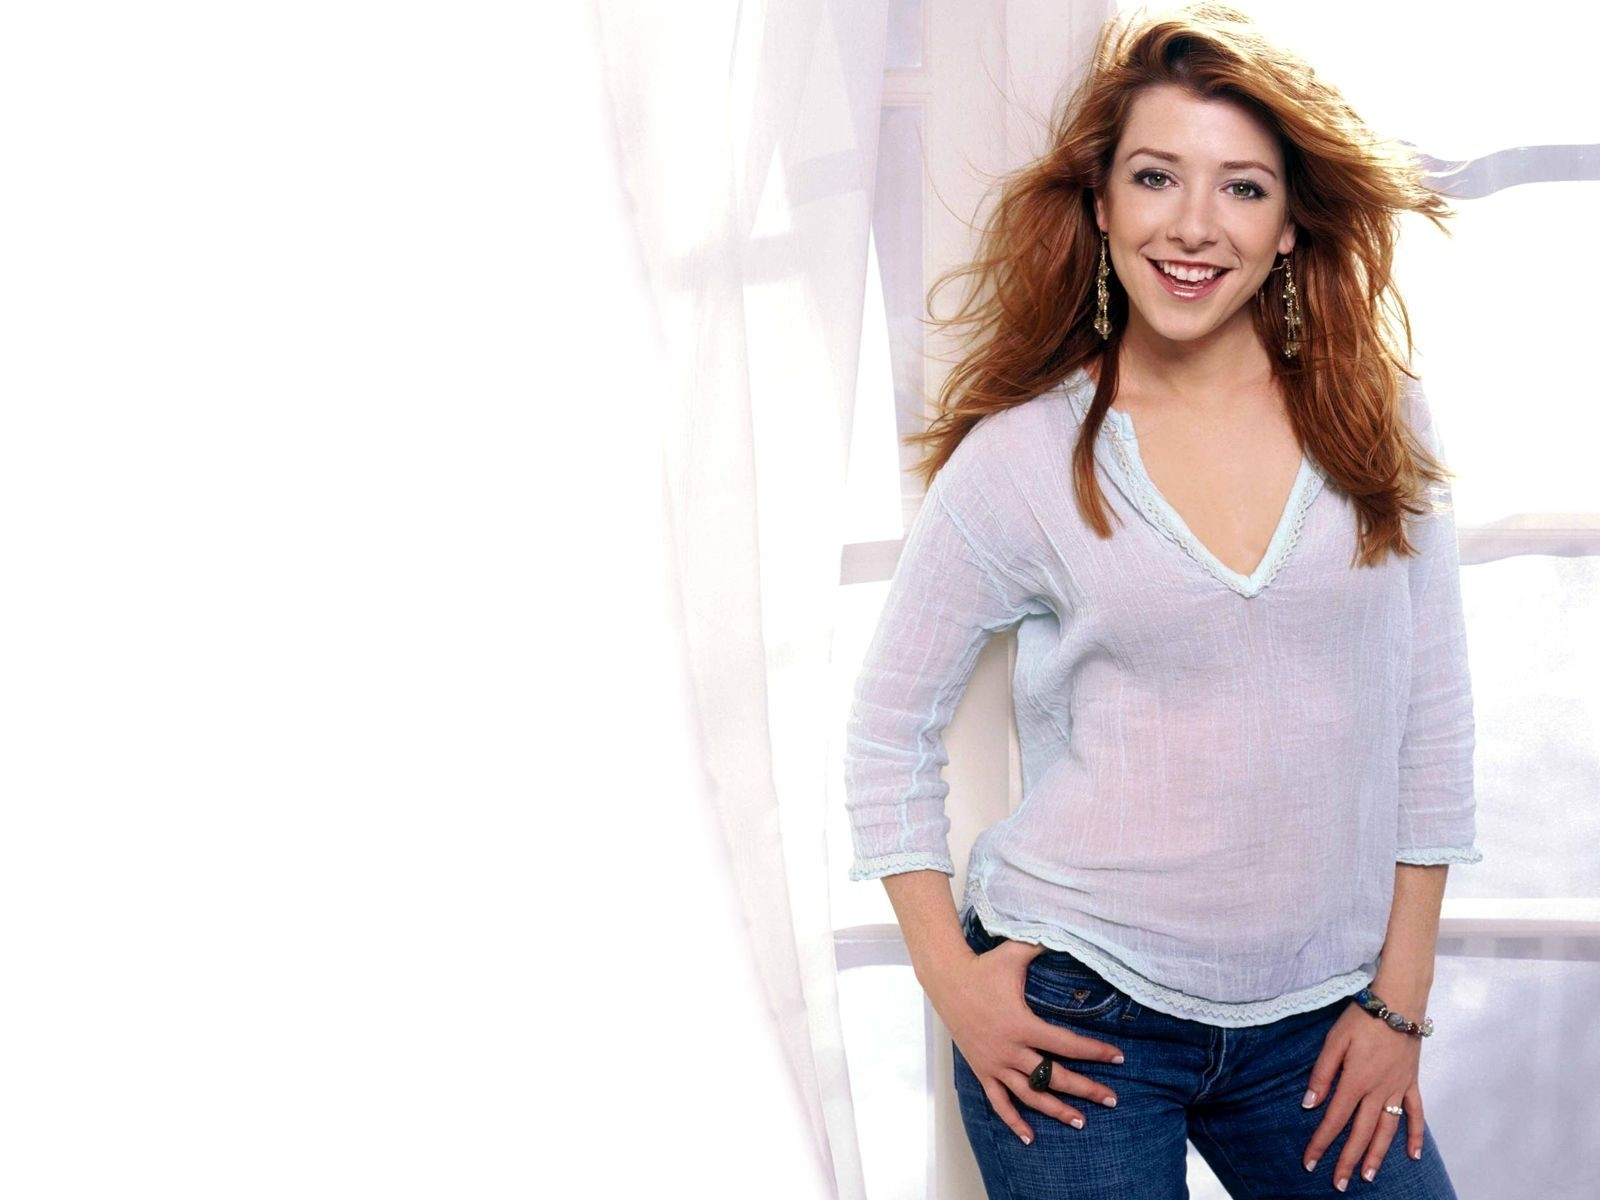 Un wallpaper di Alyson Hannigan